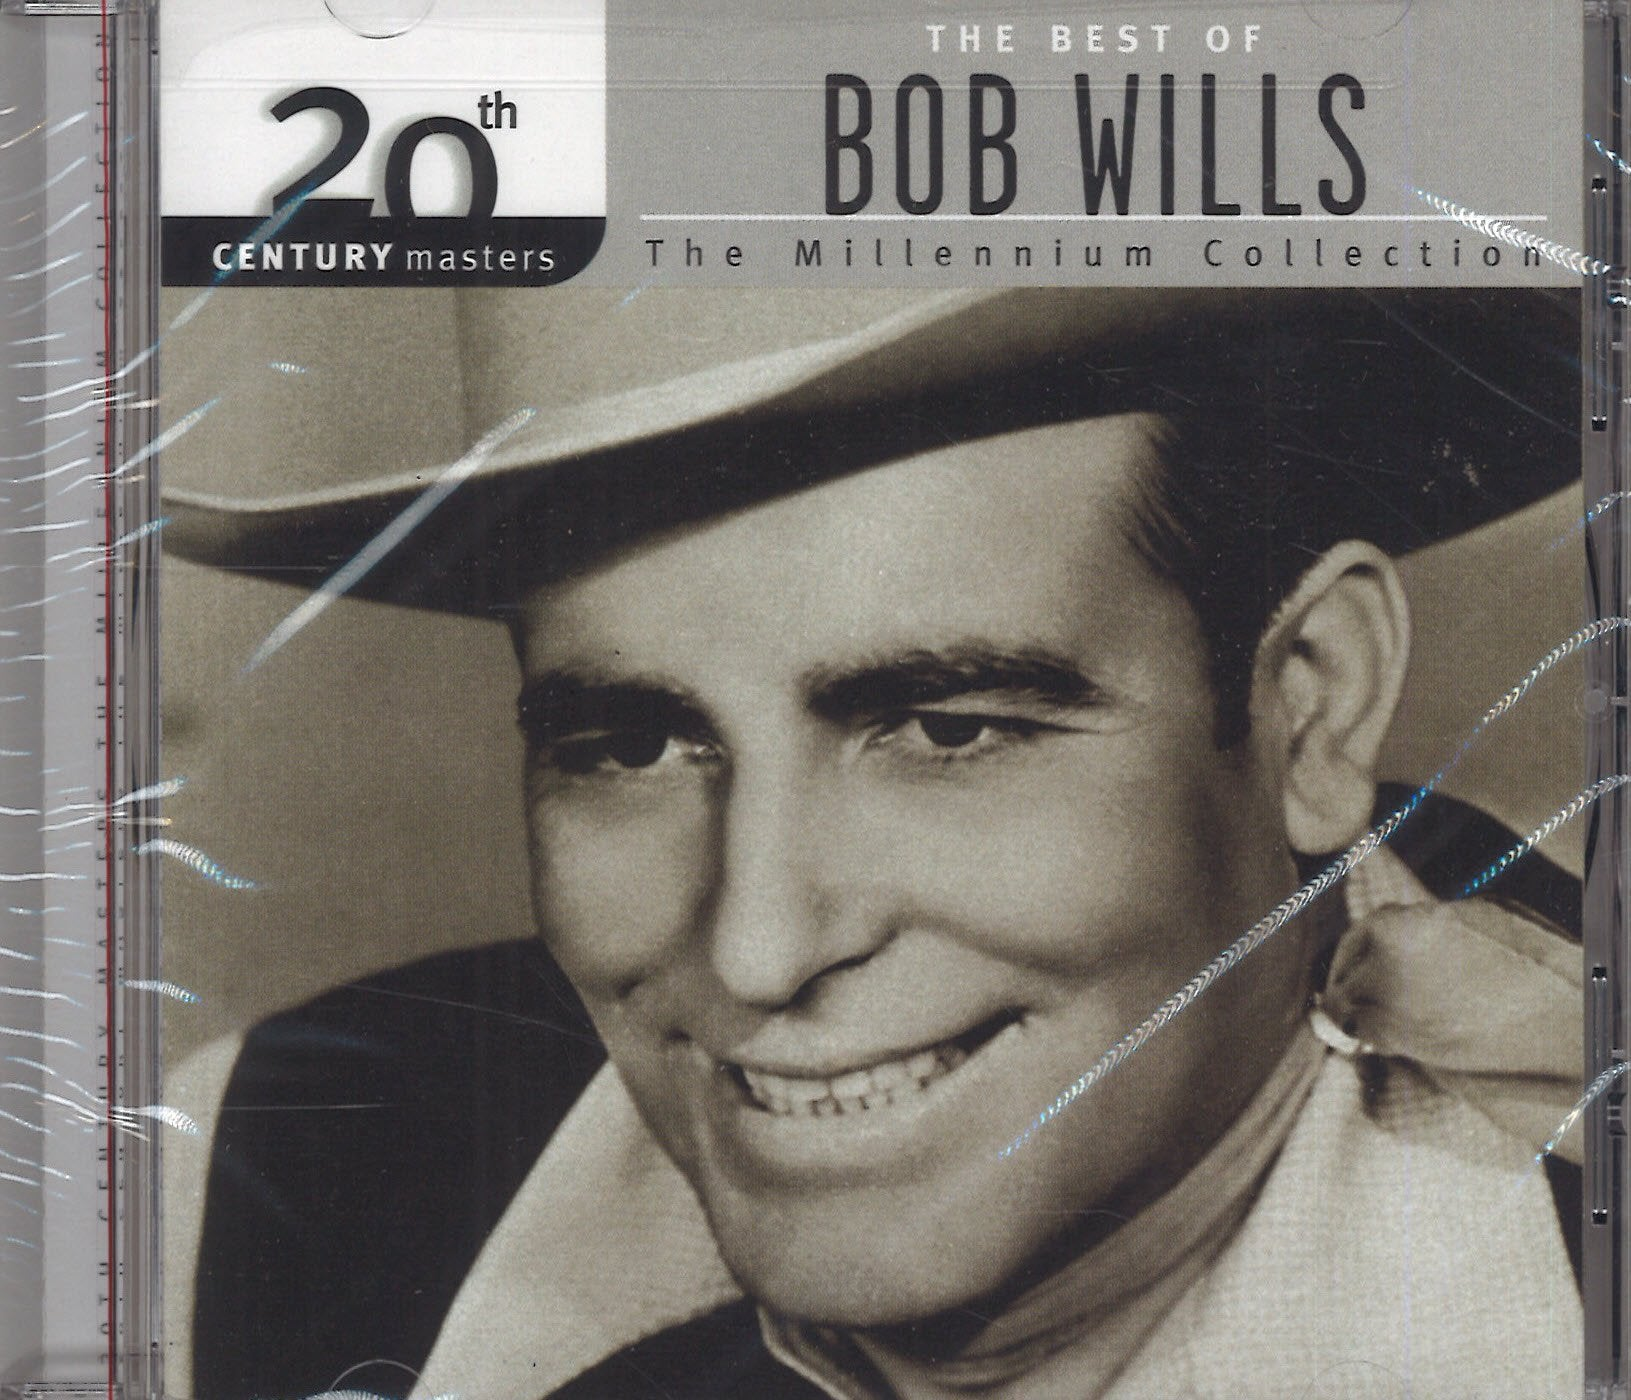 Bob Wills The Millennium Collection